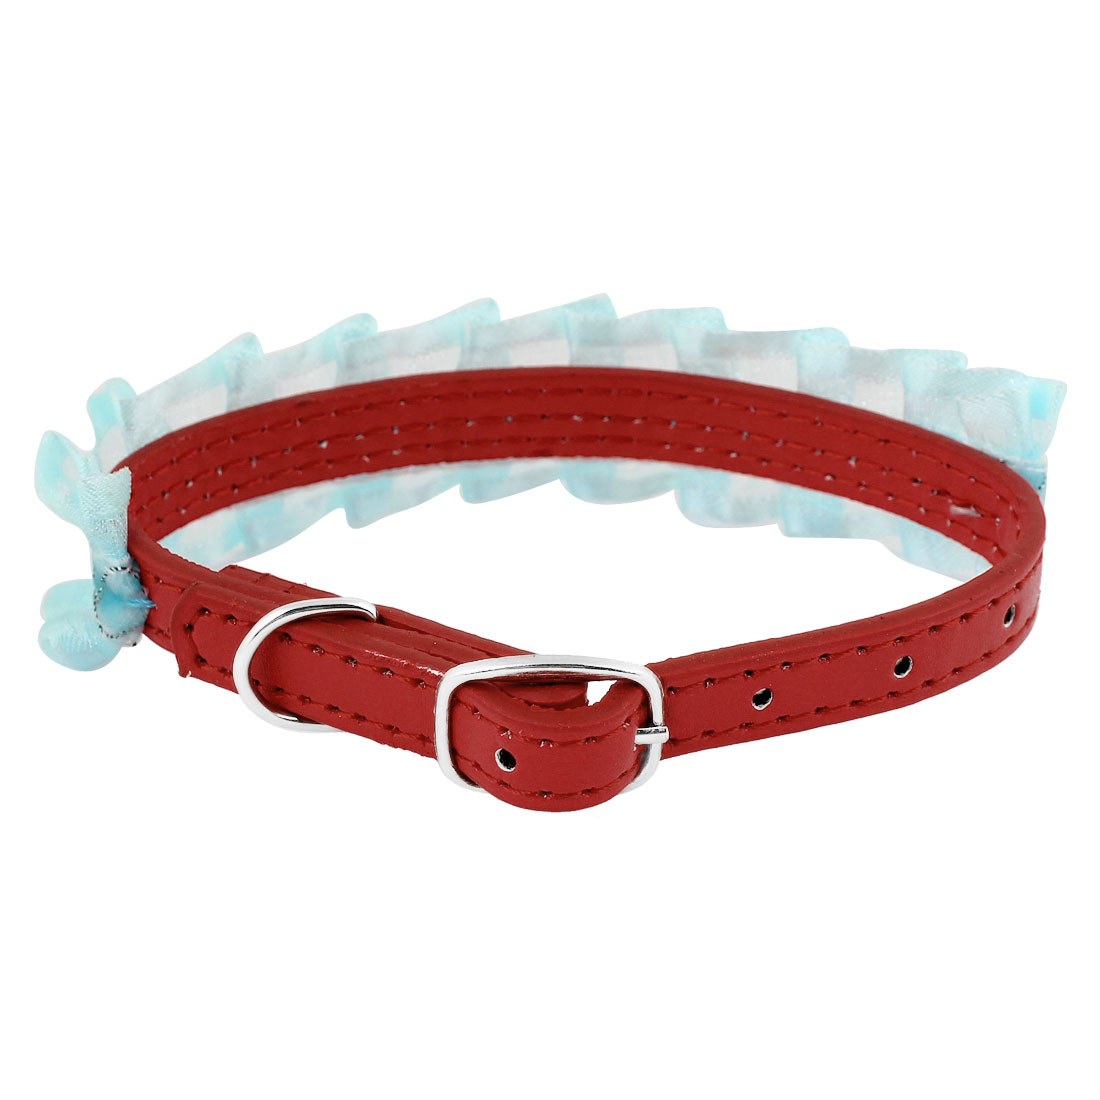 Red Faux Leather Pale Green Lace Decor Adjustable Dog Doggy Puppy Collar Rope